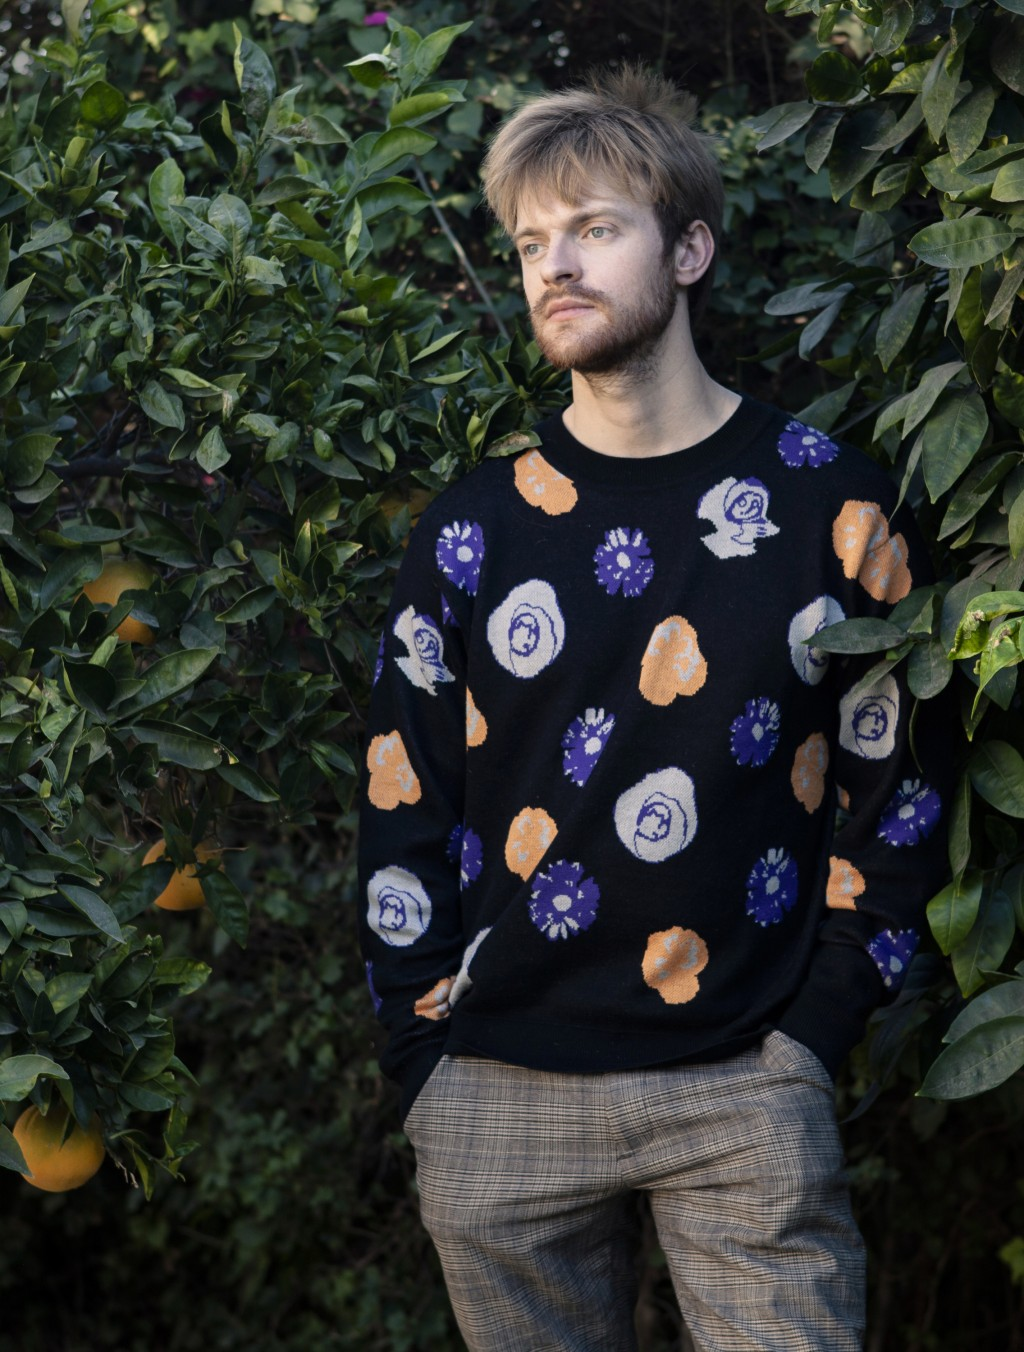 Finneas O'Connell poses at his home in Los Angeles on Friday Dec. 4 2020. O'Connell has been named one of The Associated Press' Breakthrough Entertain...